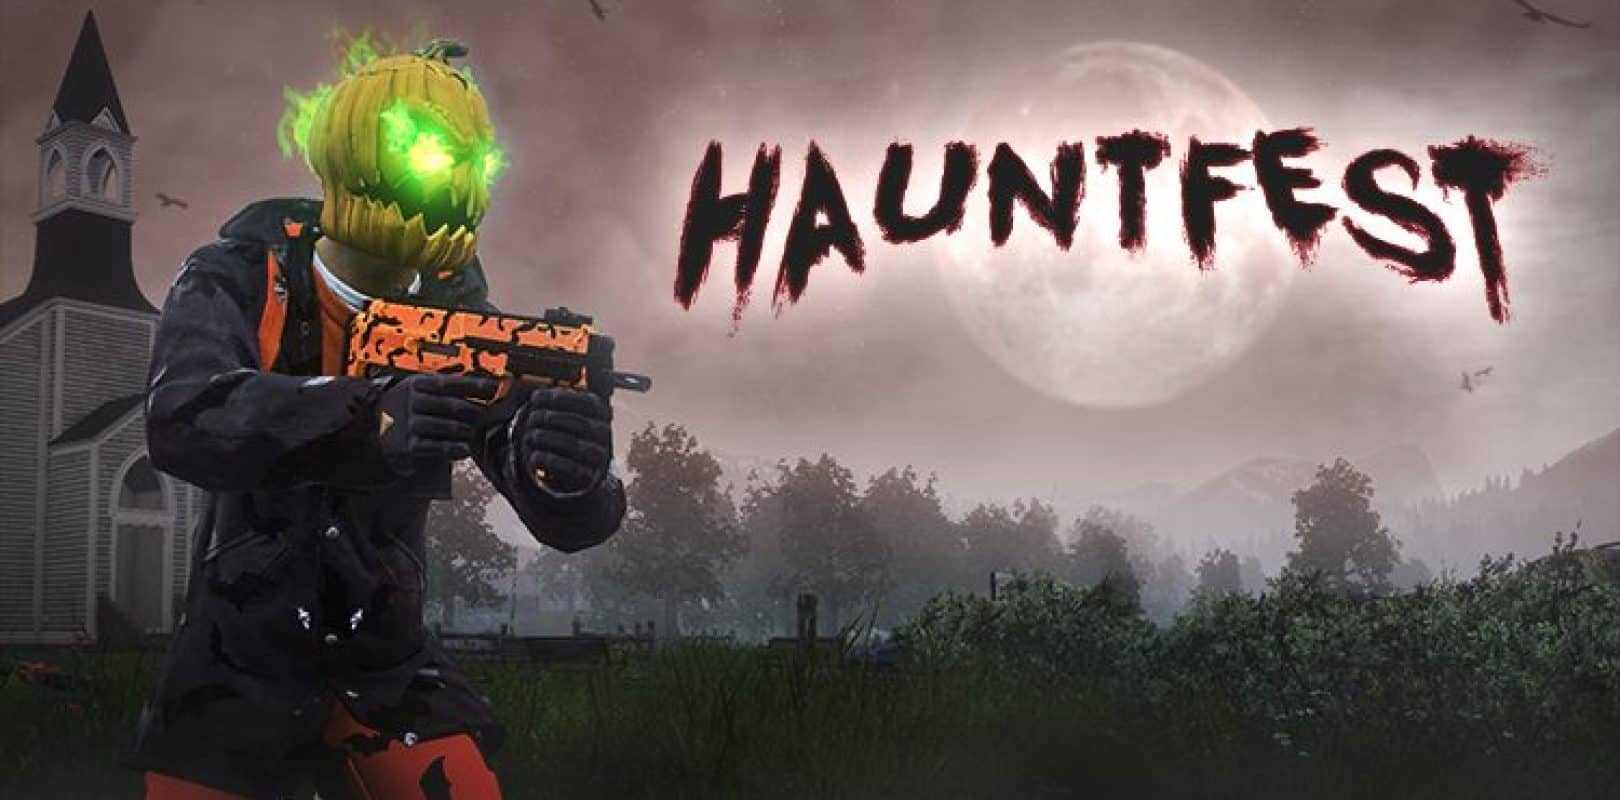 H1Z1 - HAUNTFEST! Game Update - All Patch Notes